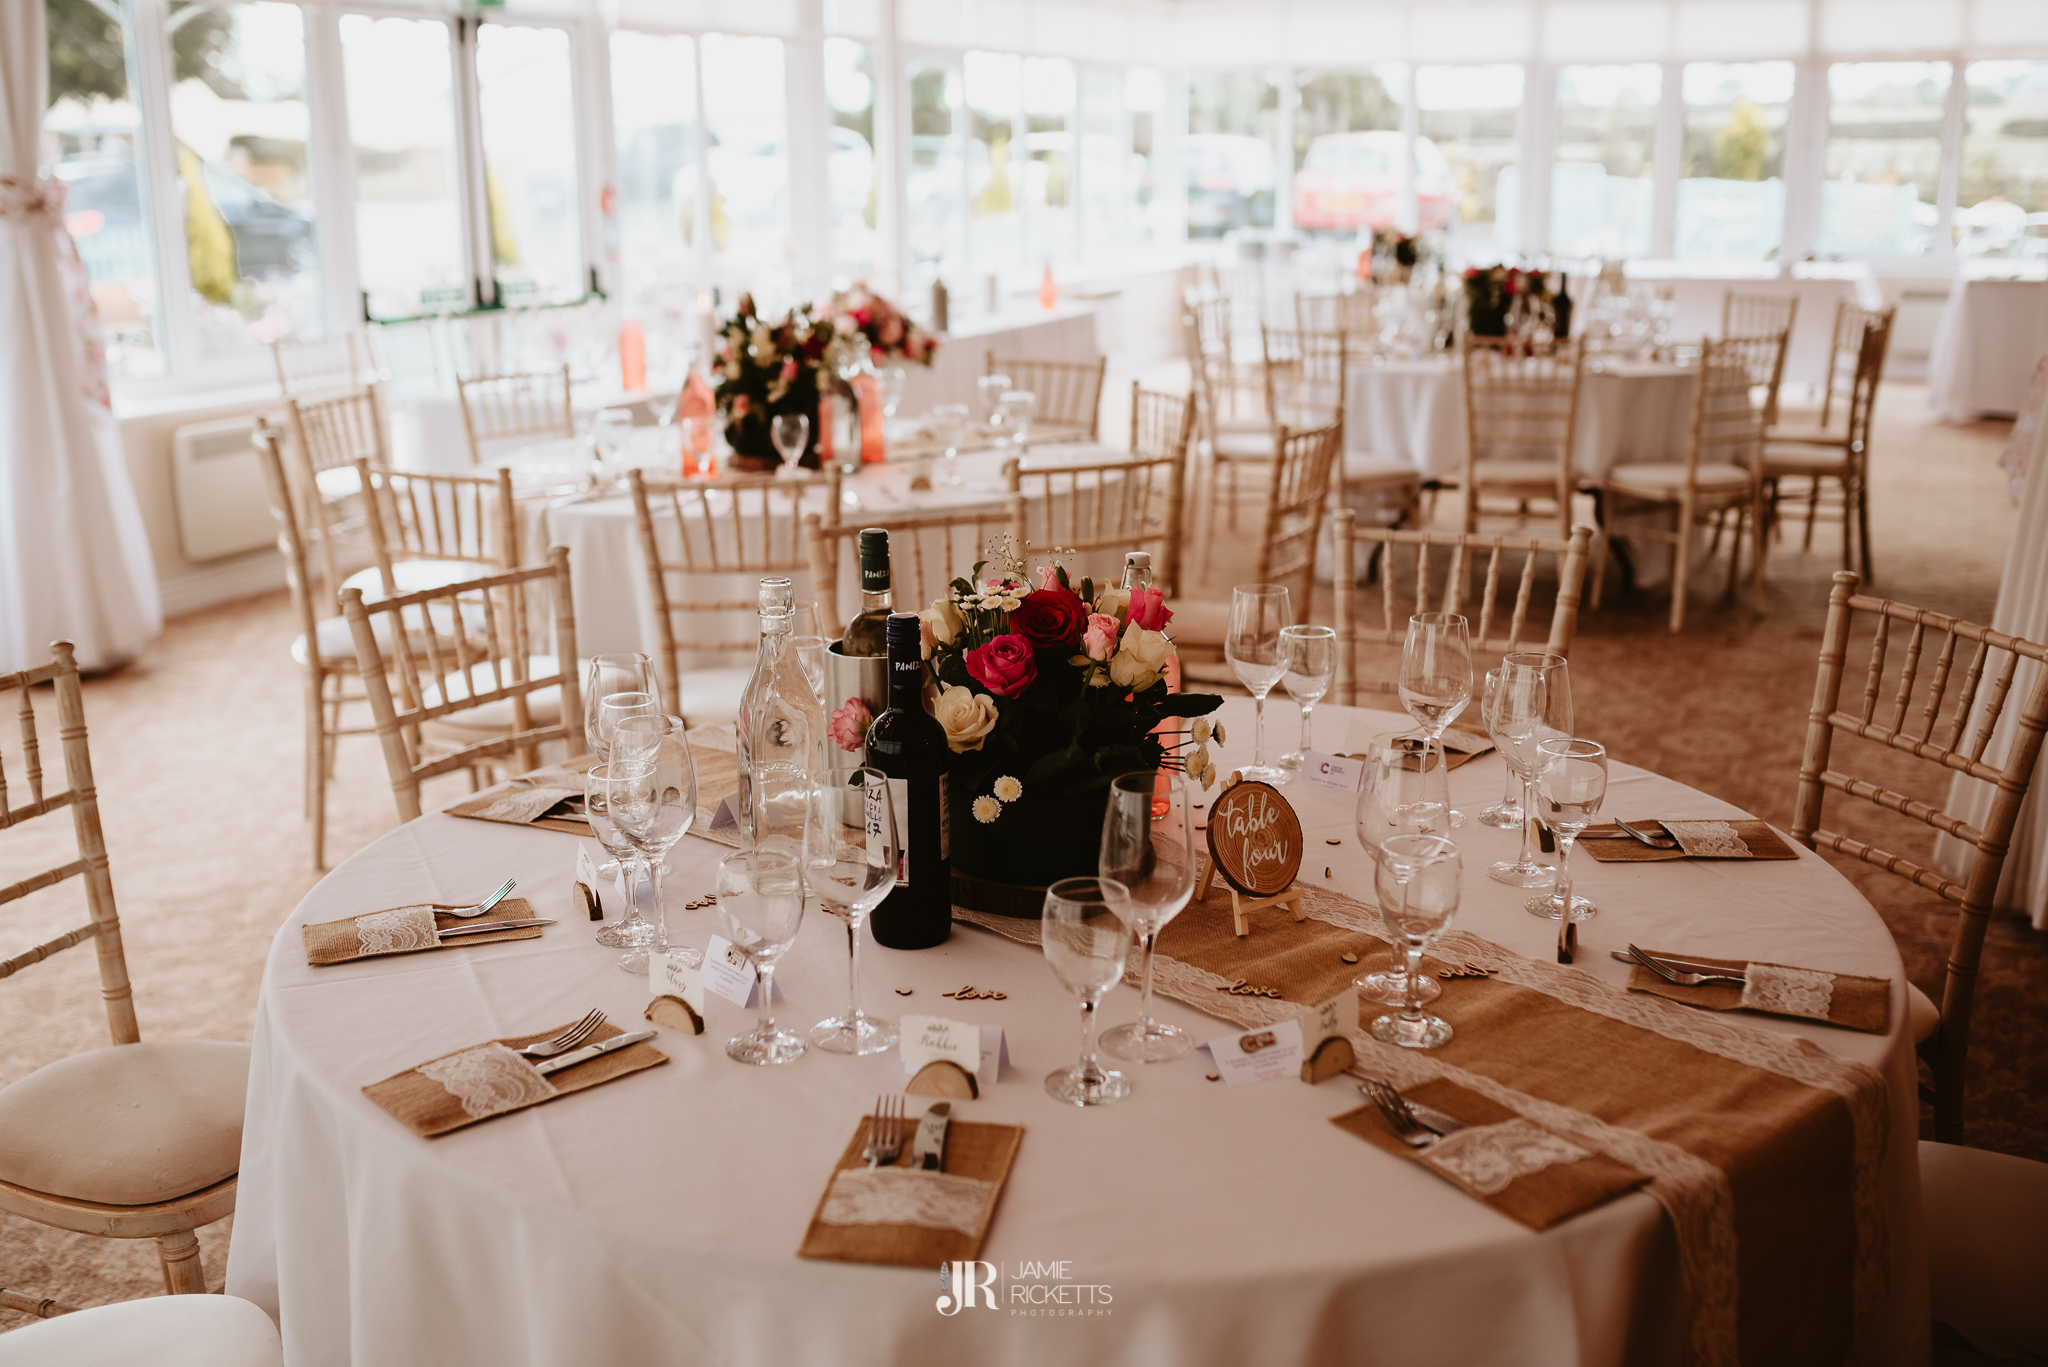 Wroxeter-Hotel-Wedding-Photography-In-Shropshire-By-Shropshire-Wedding-Photographer-Jamie-Ricketts-135.JPG